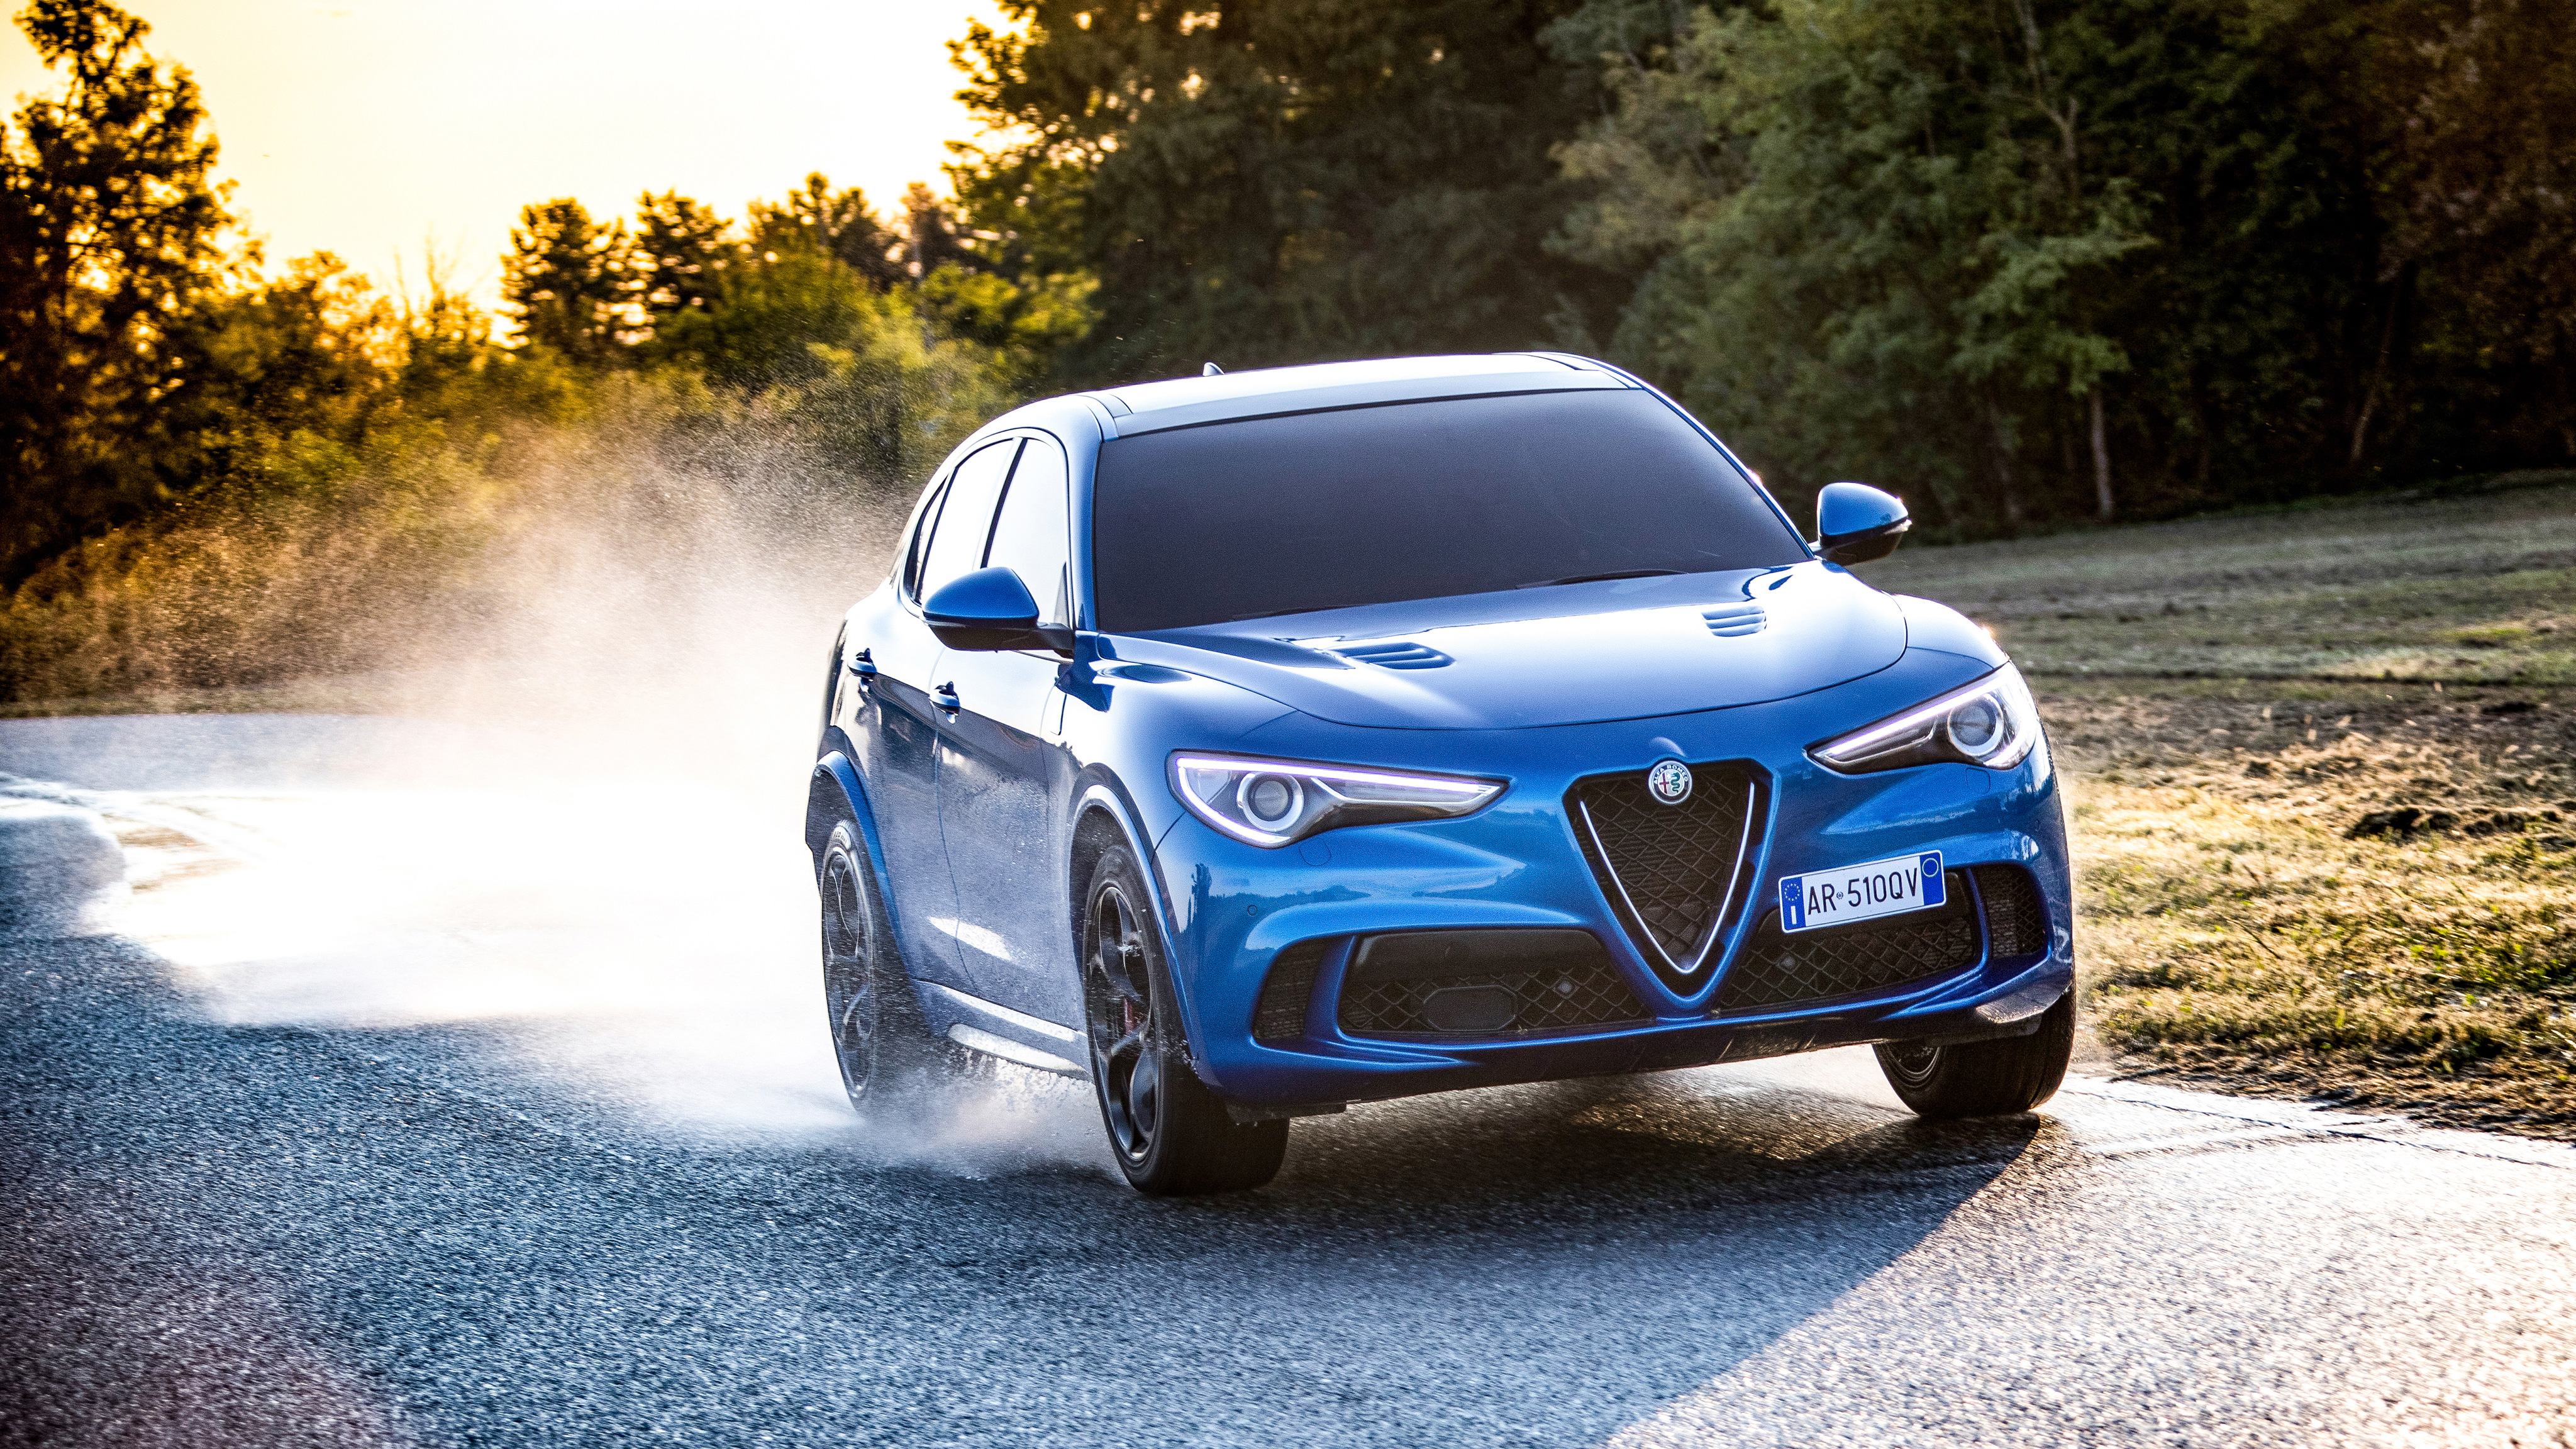 alfa romeo stelvio quadrifoglio hd cars 4k wallpapers images backgrounds photos and pictures. Black Bedroom Furniture Sets. Home Design Ideas